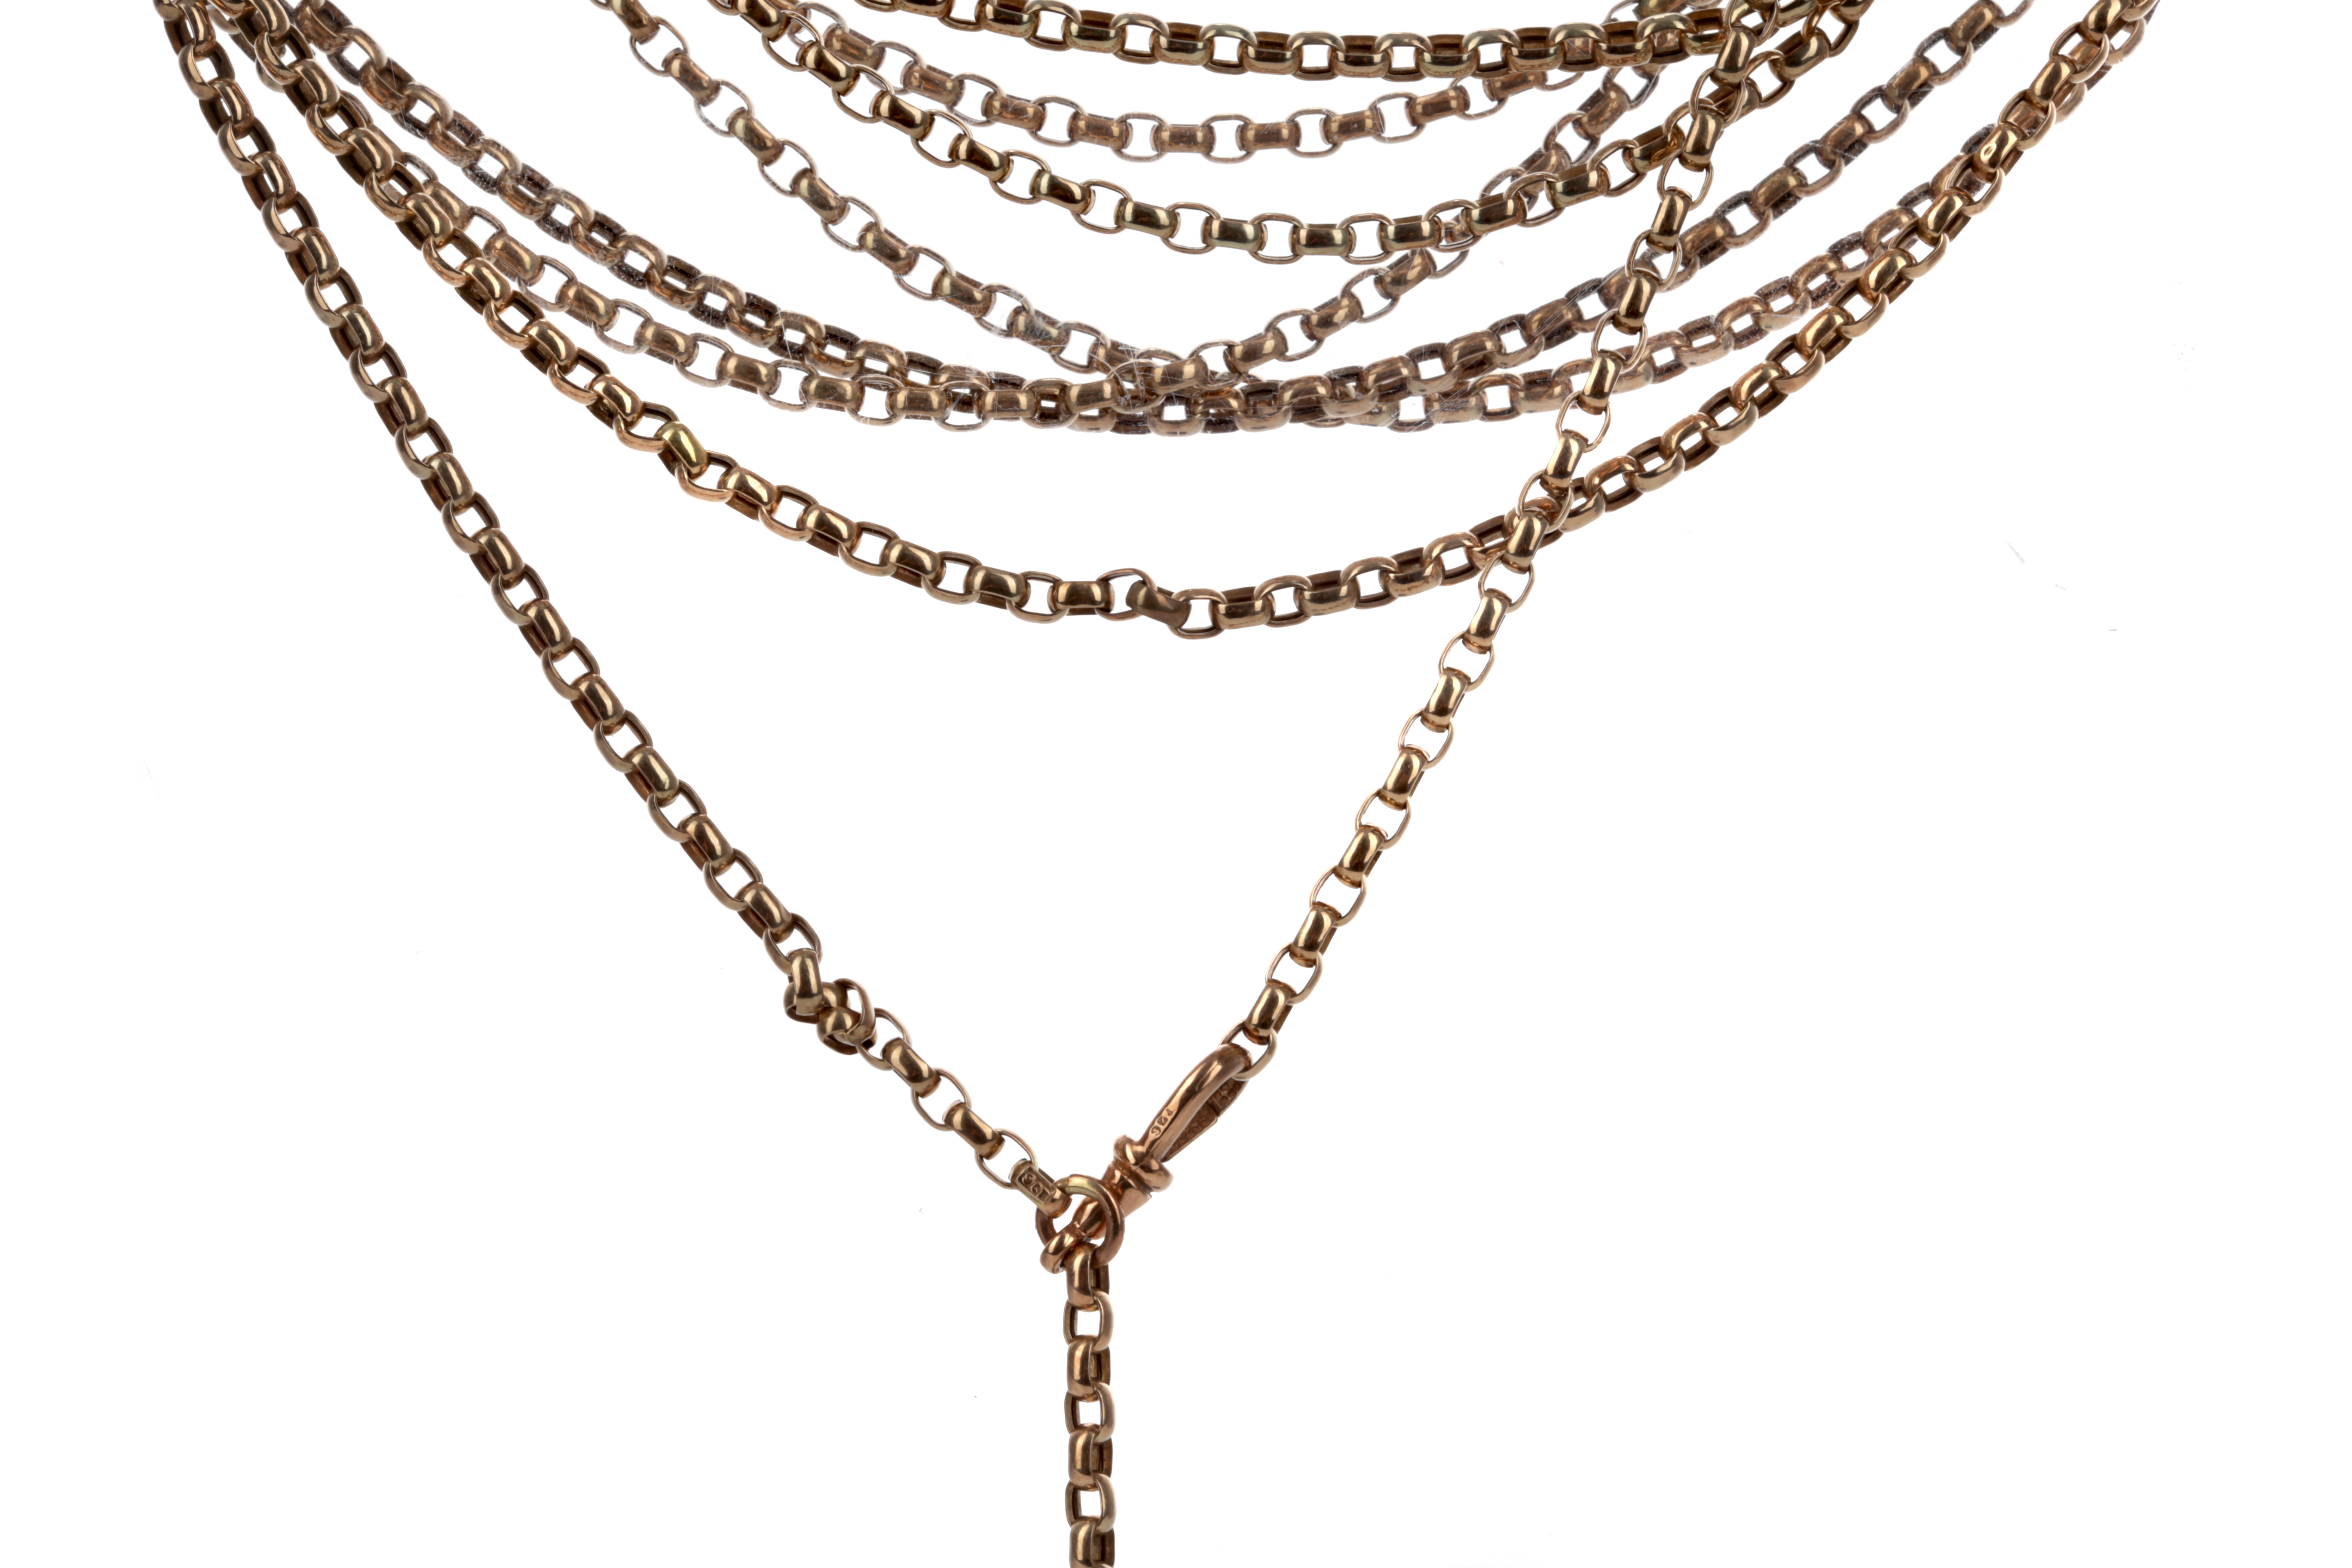 A GOLD GUARD CHAIN AND A BRACELET